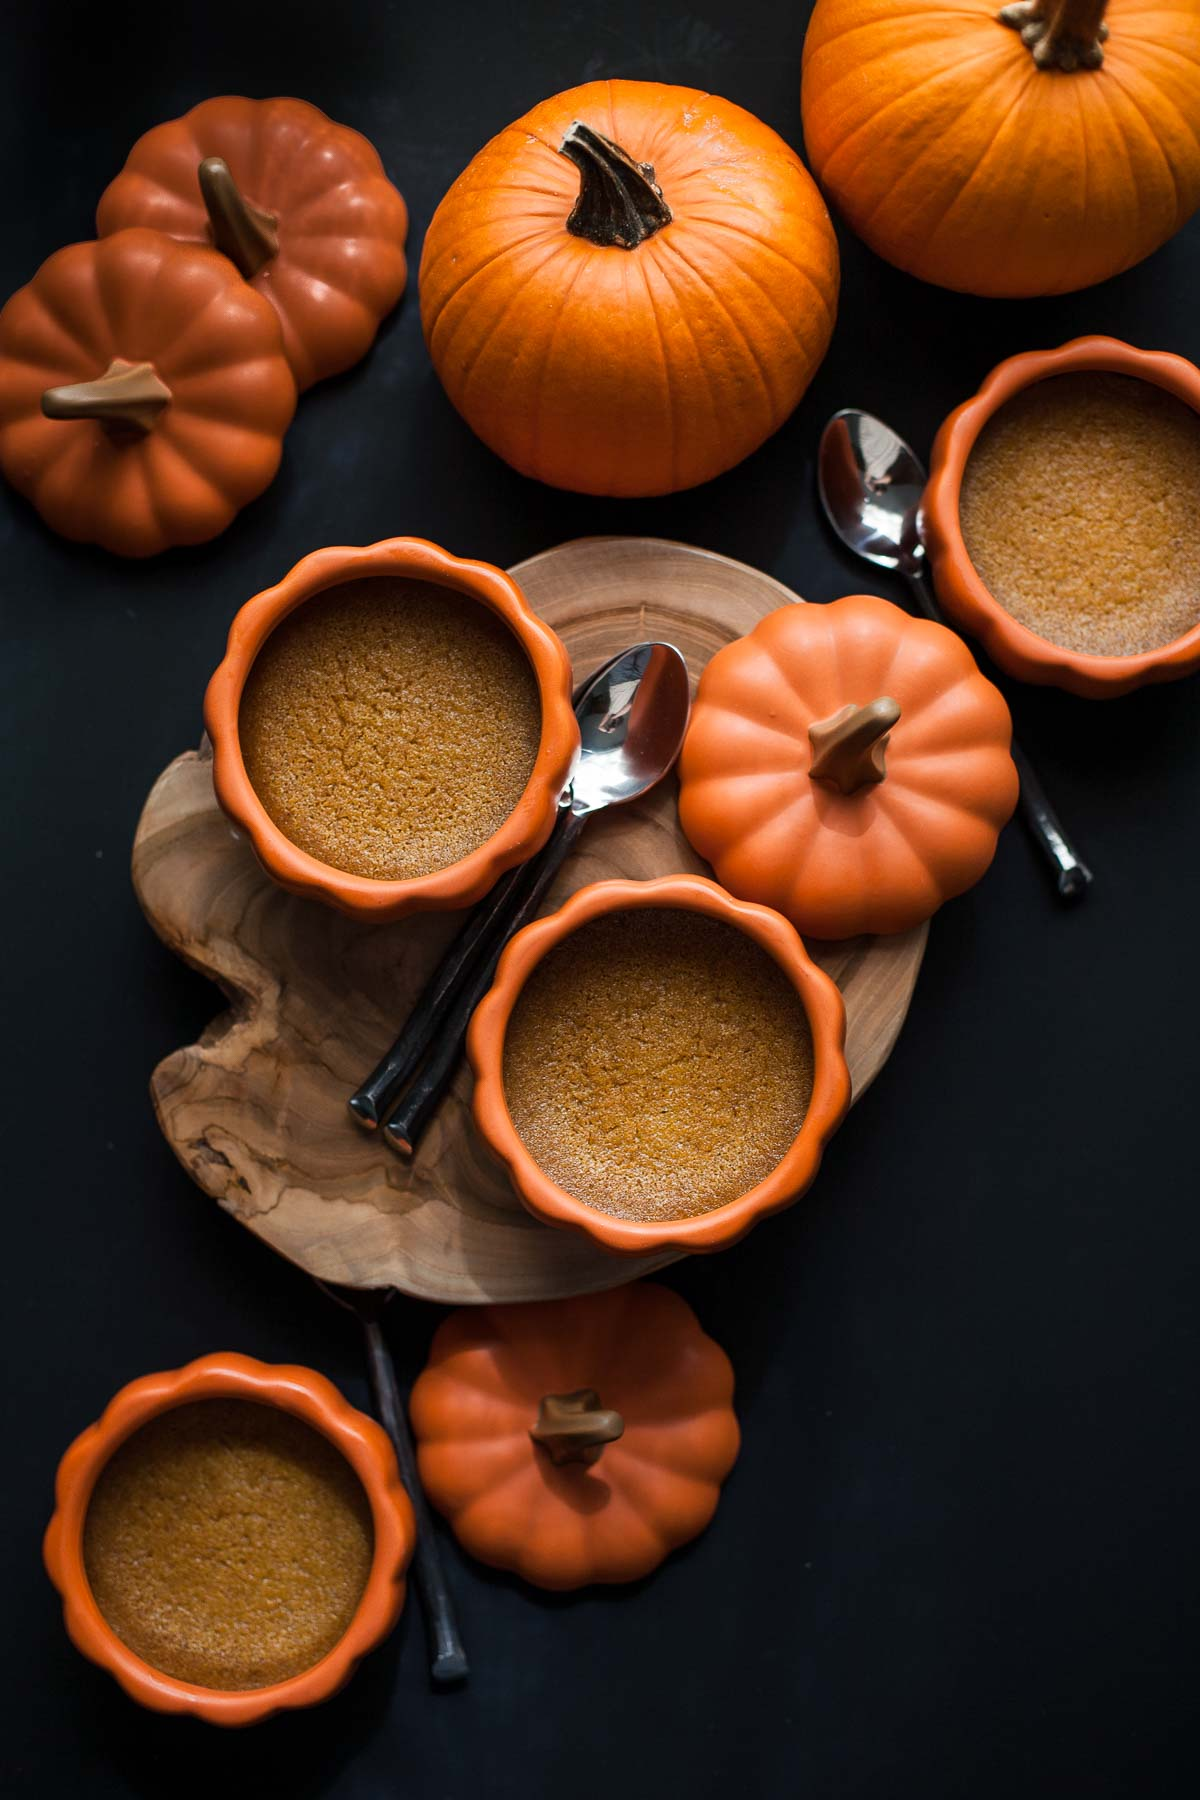 Baked Pumpkin Custards with Maple Mascarpone Whipped Cream (Gluten free, Grain free)